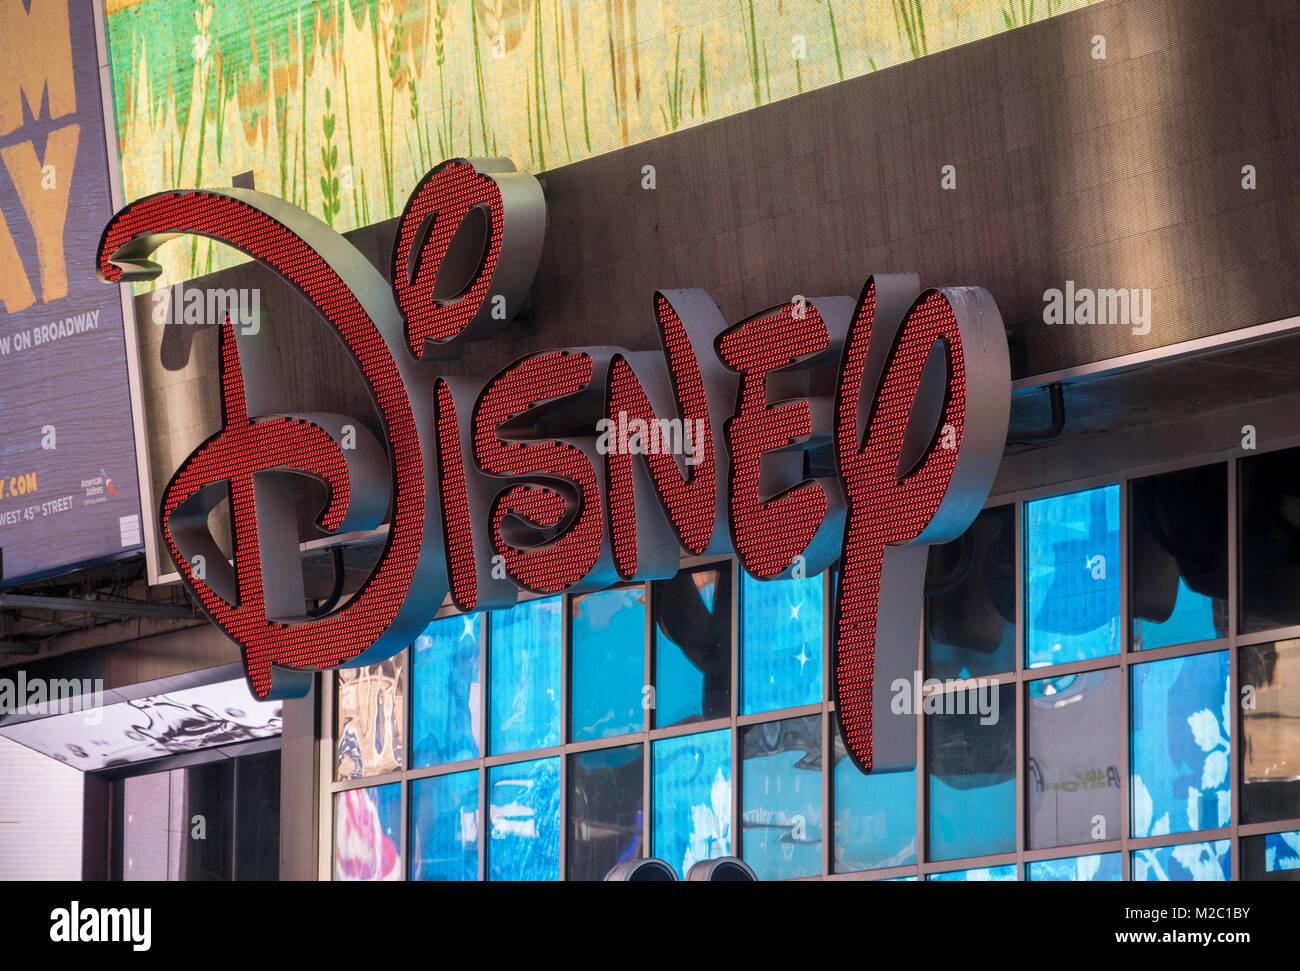 Disney products store stock photos disney products store stock the disney store in times square in new york on monday february 5 2018 biocorpaavc Choice Image